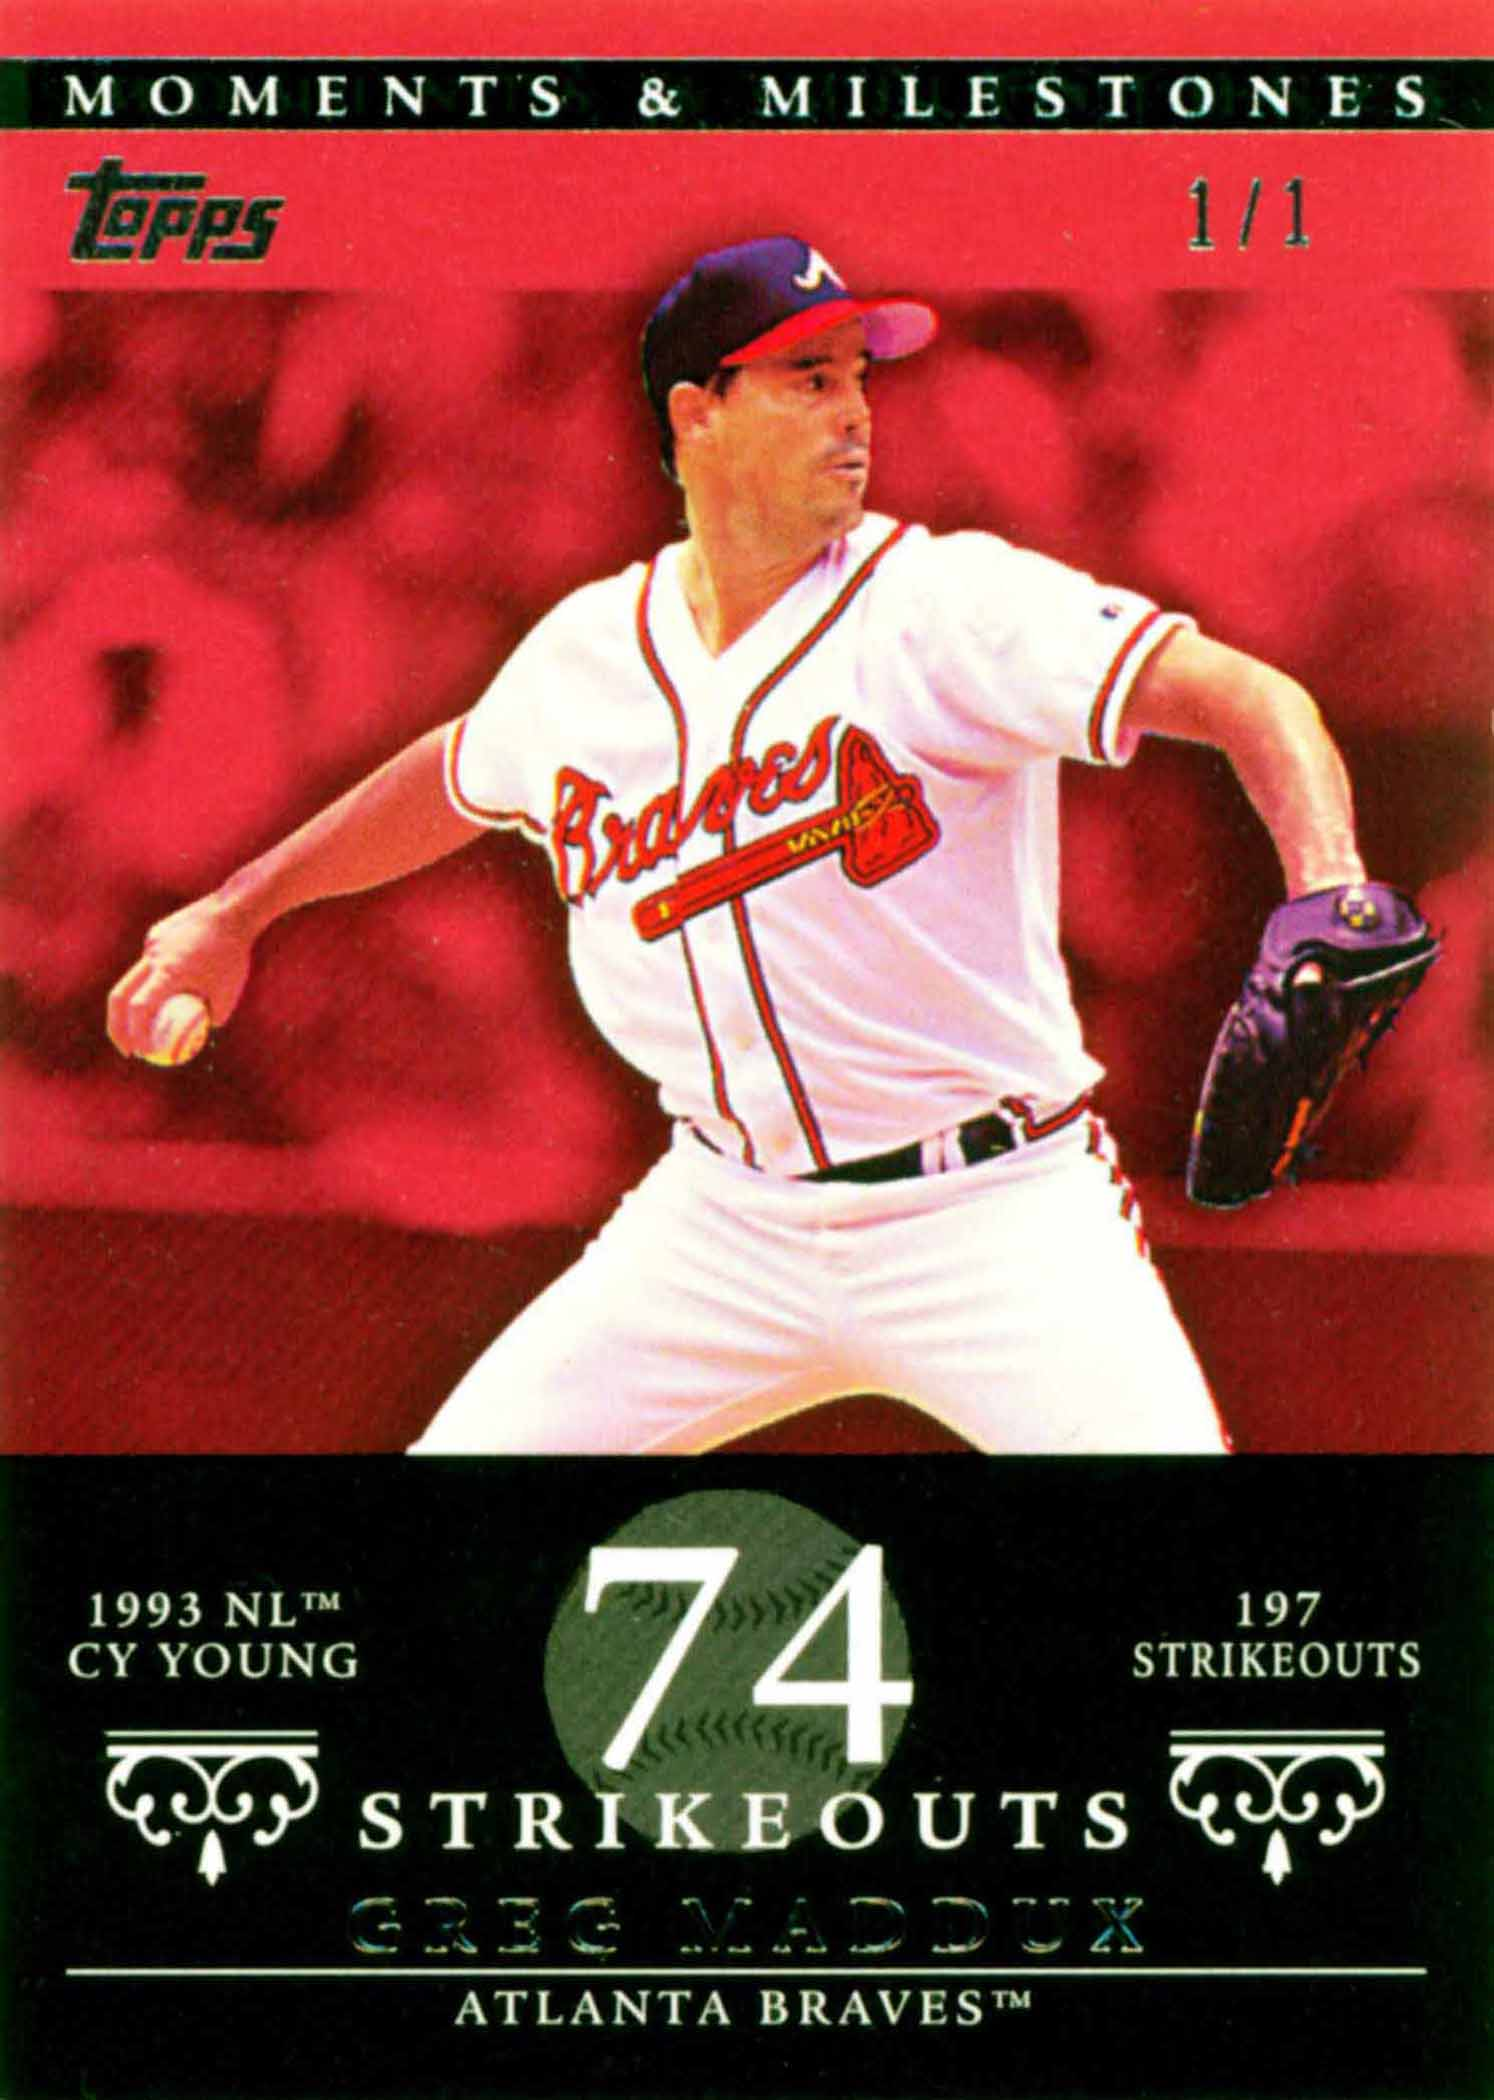 2007 Topps Moments and Milestones Red